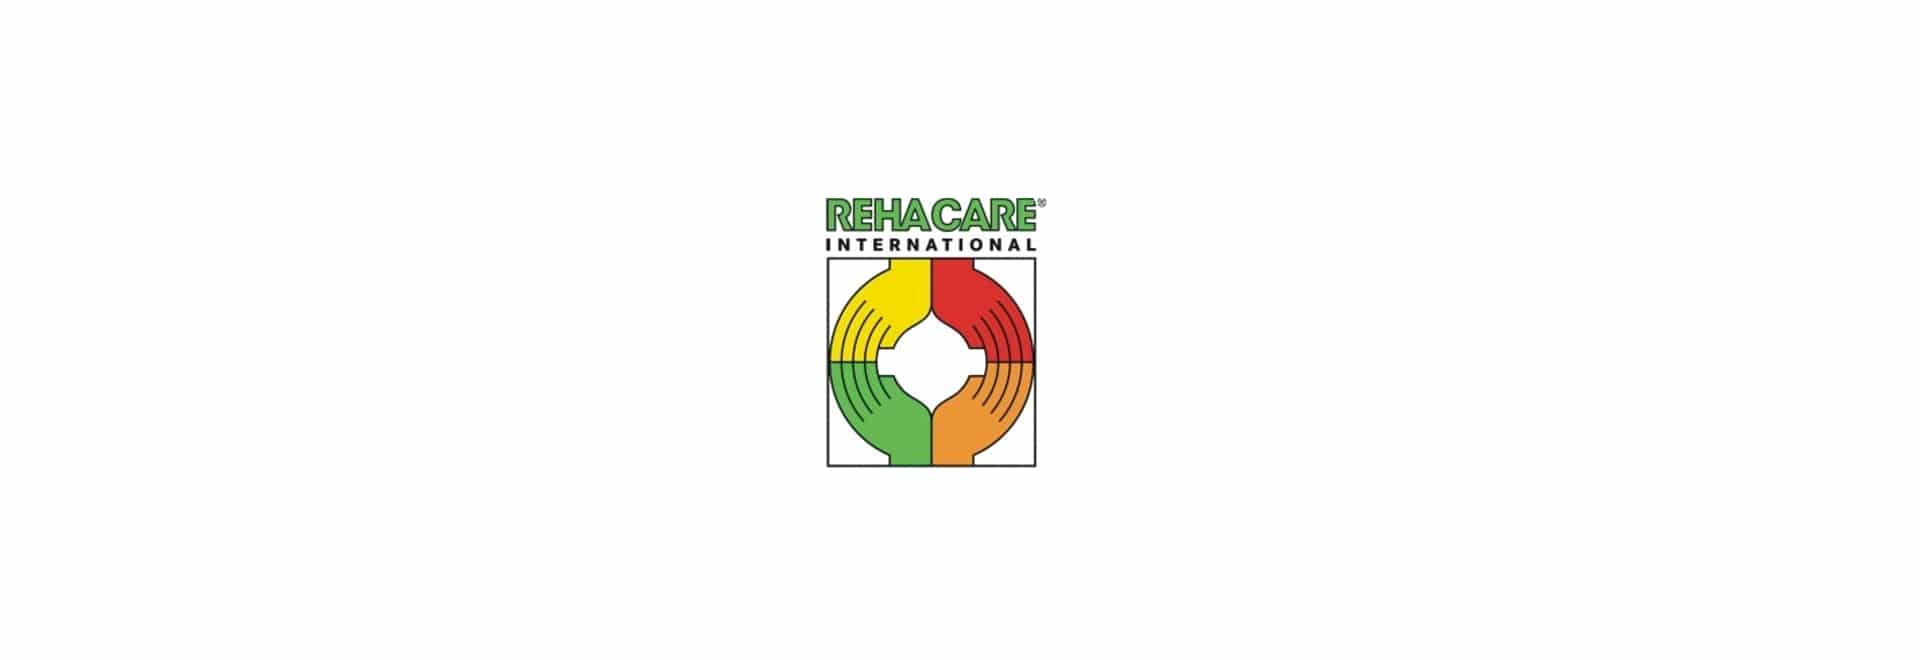 SOWECARE will join the Reha-Care Germany